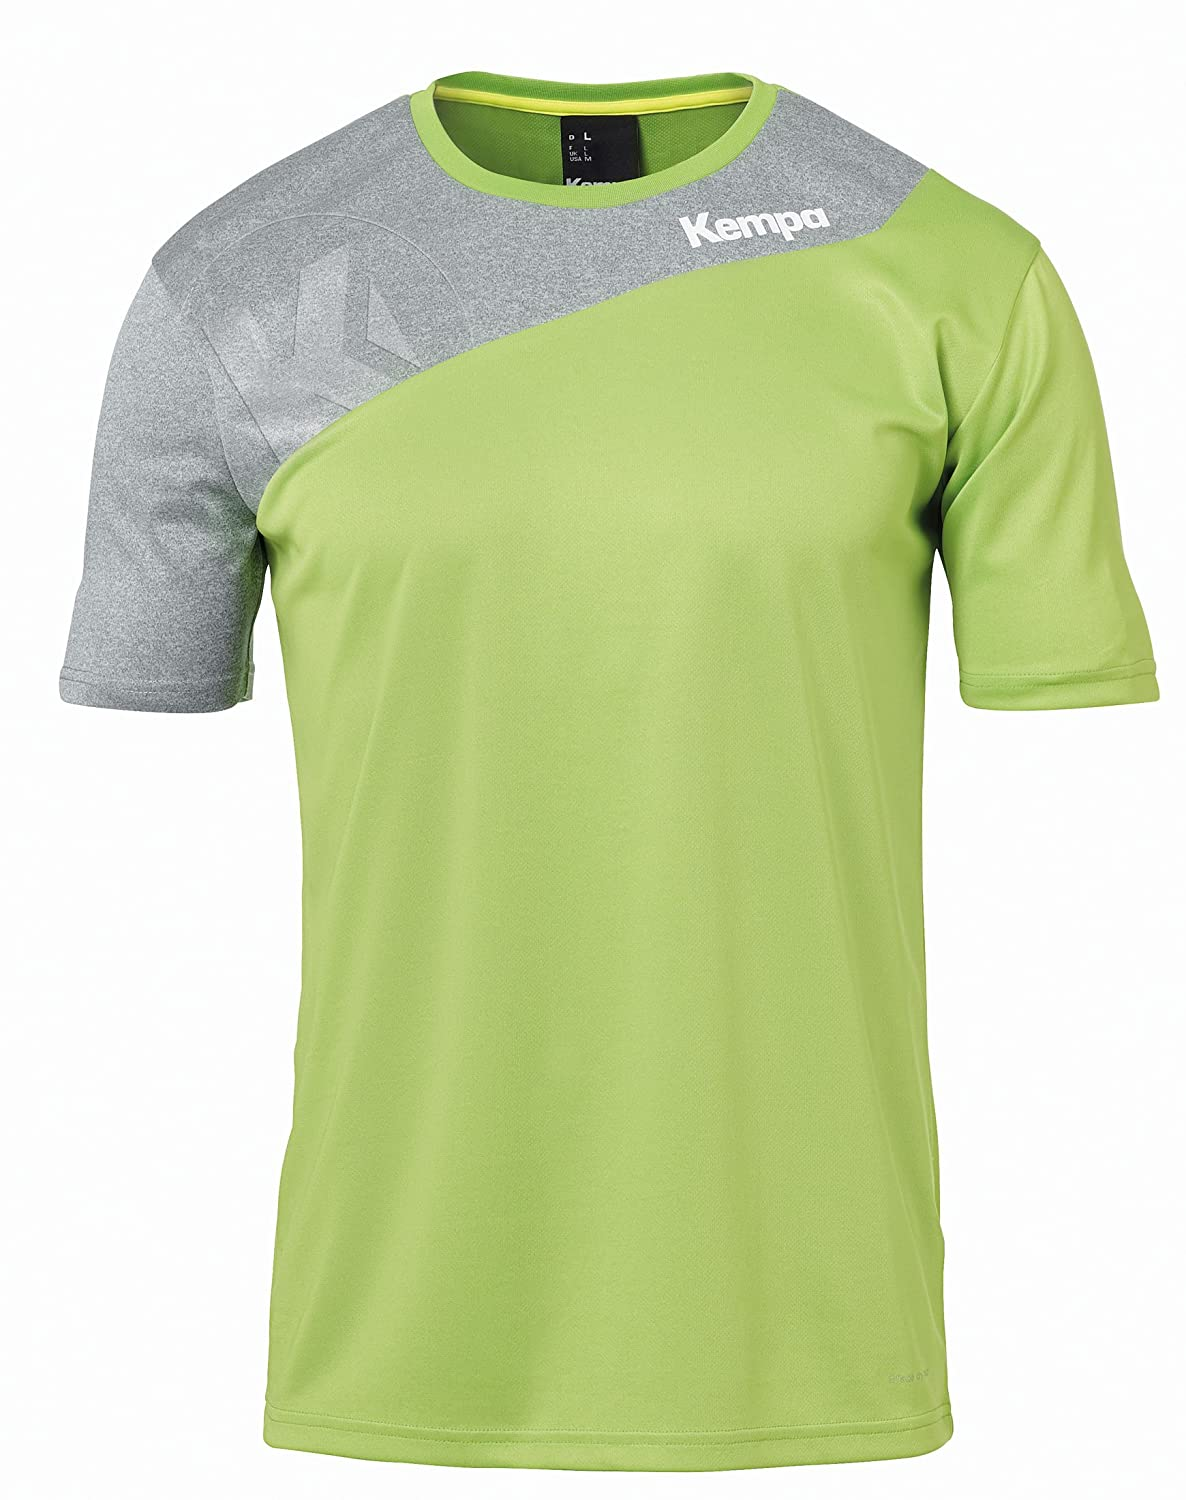 Kempa Core 2.0 Camiseta